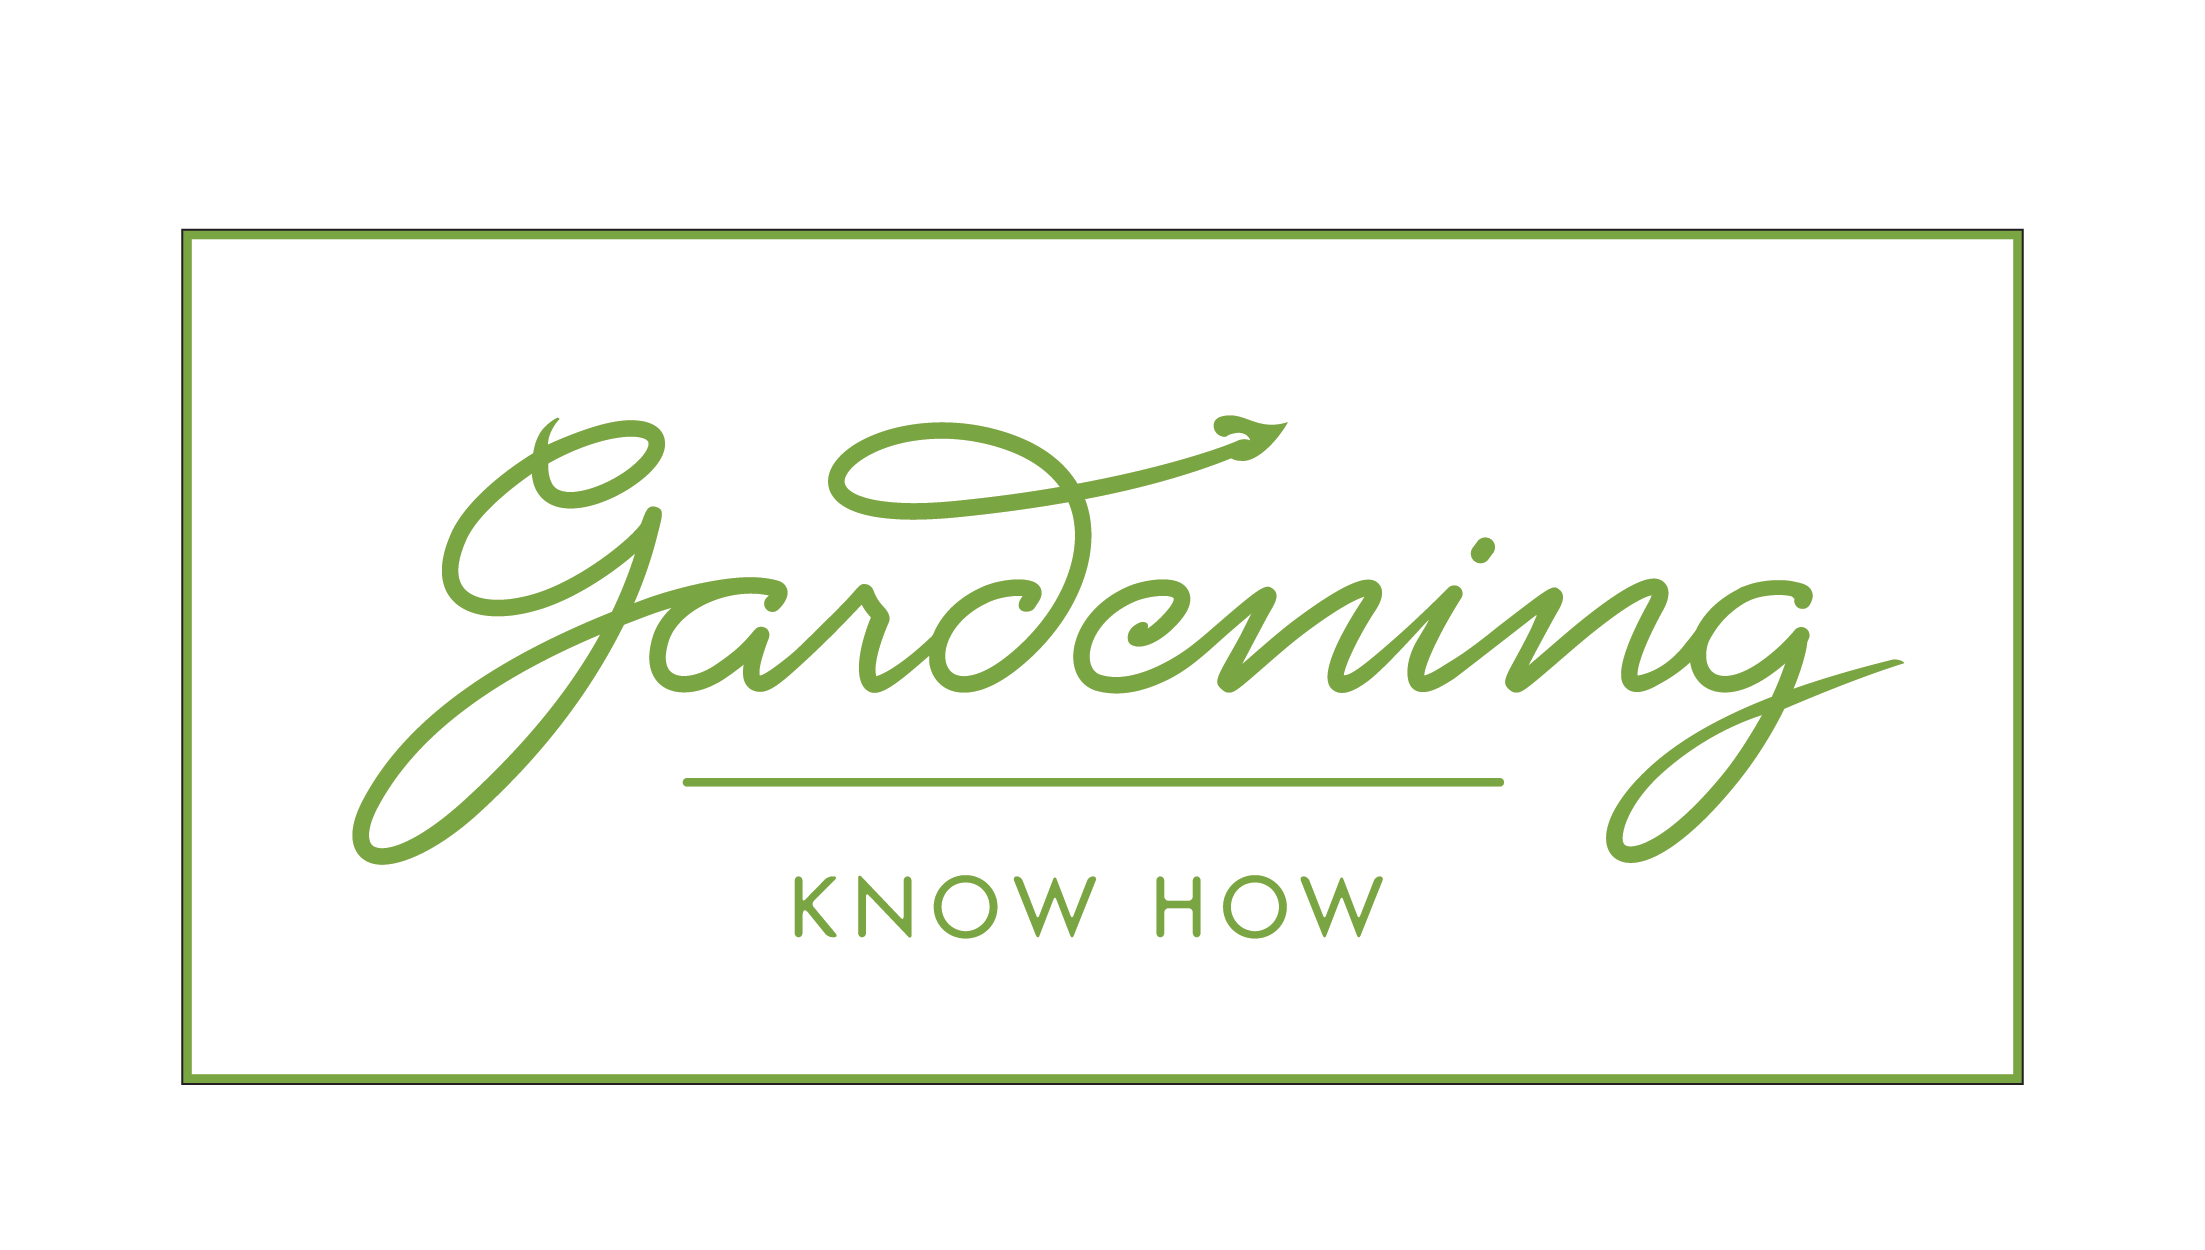 Gardening Know How